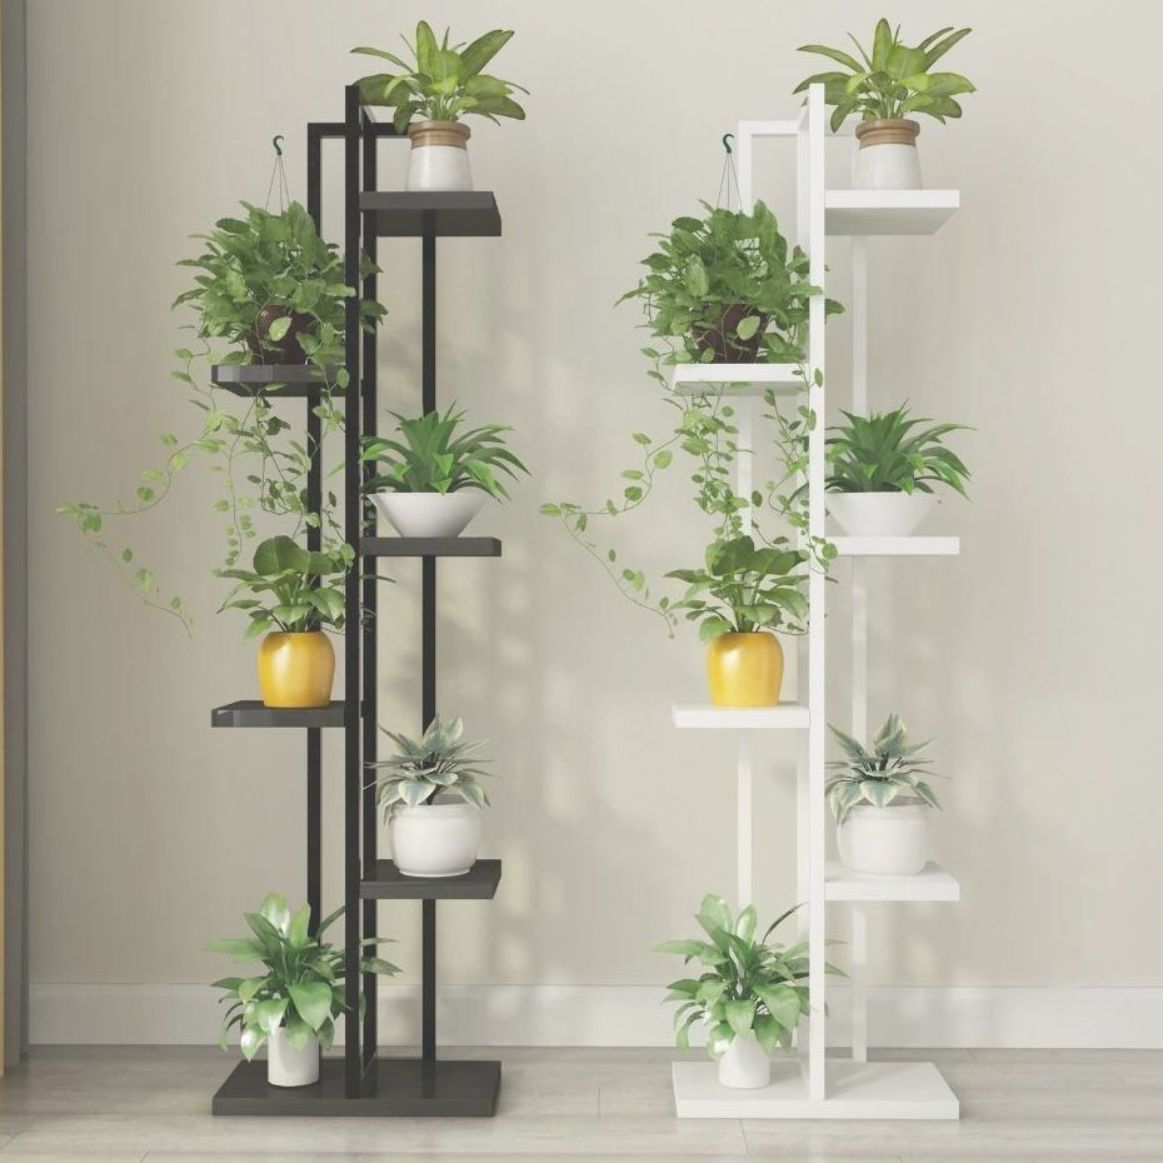 Diy Plant Stand Ideas For An Outdoor And Indoor Decoration Unique Diy Plant Stand Ideas To Fill Your Home W Plant Decor Indoor Plant Decor Plant Stand Indoor